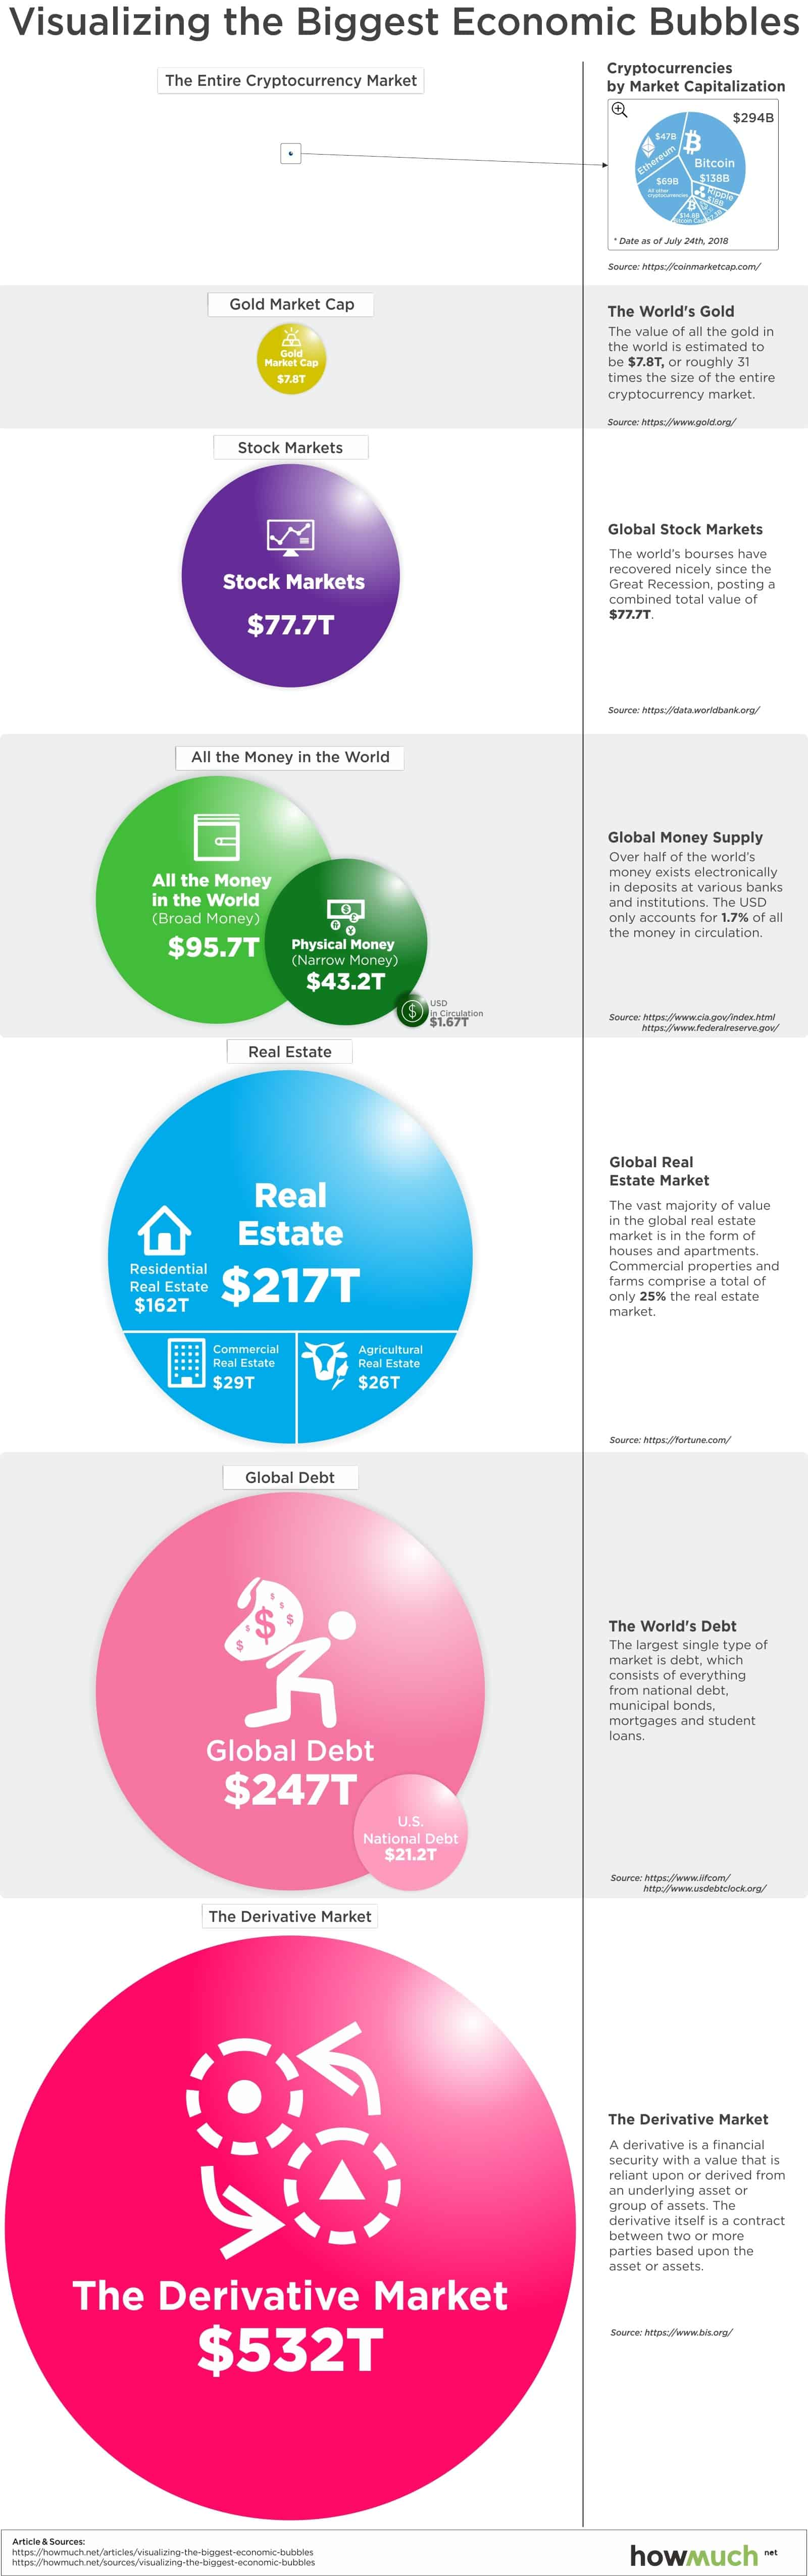 Visualizing the Biggest Economic Bubbles